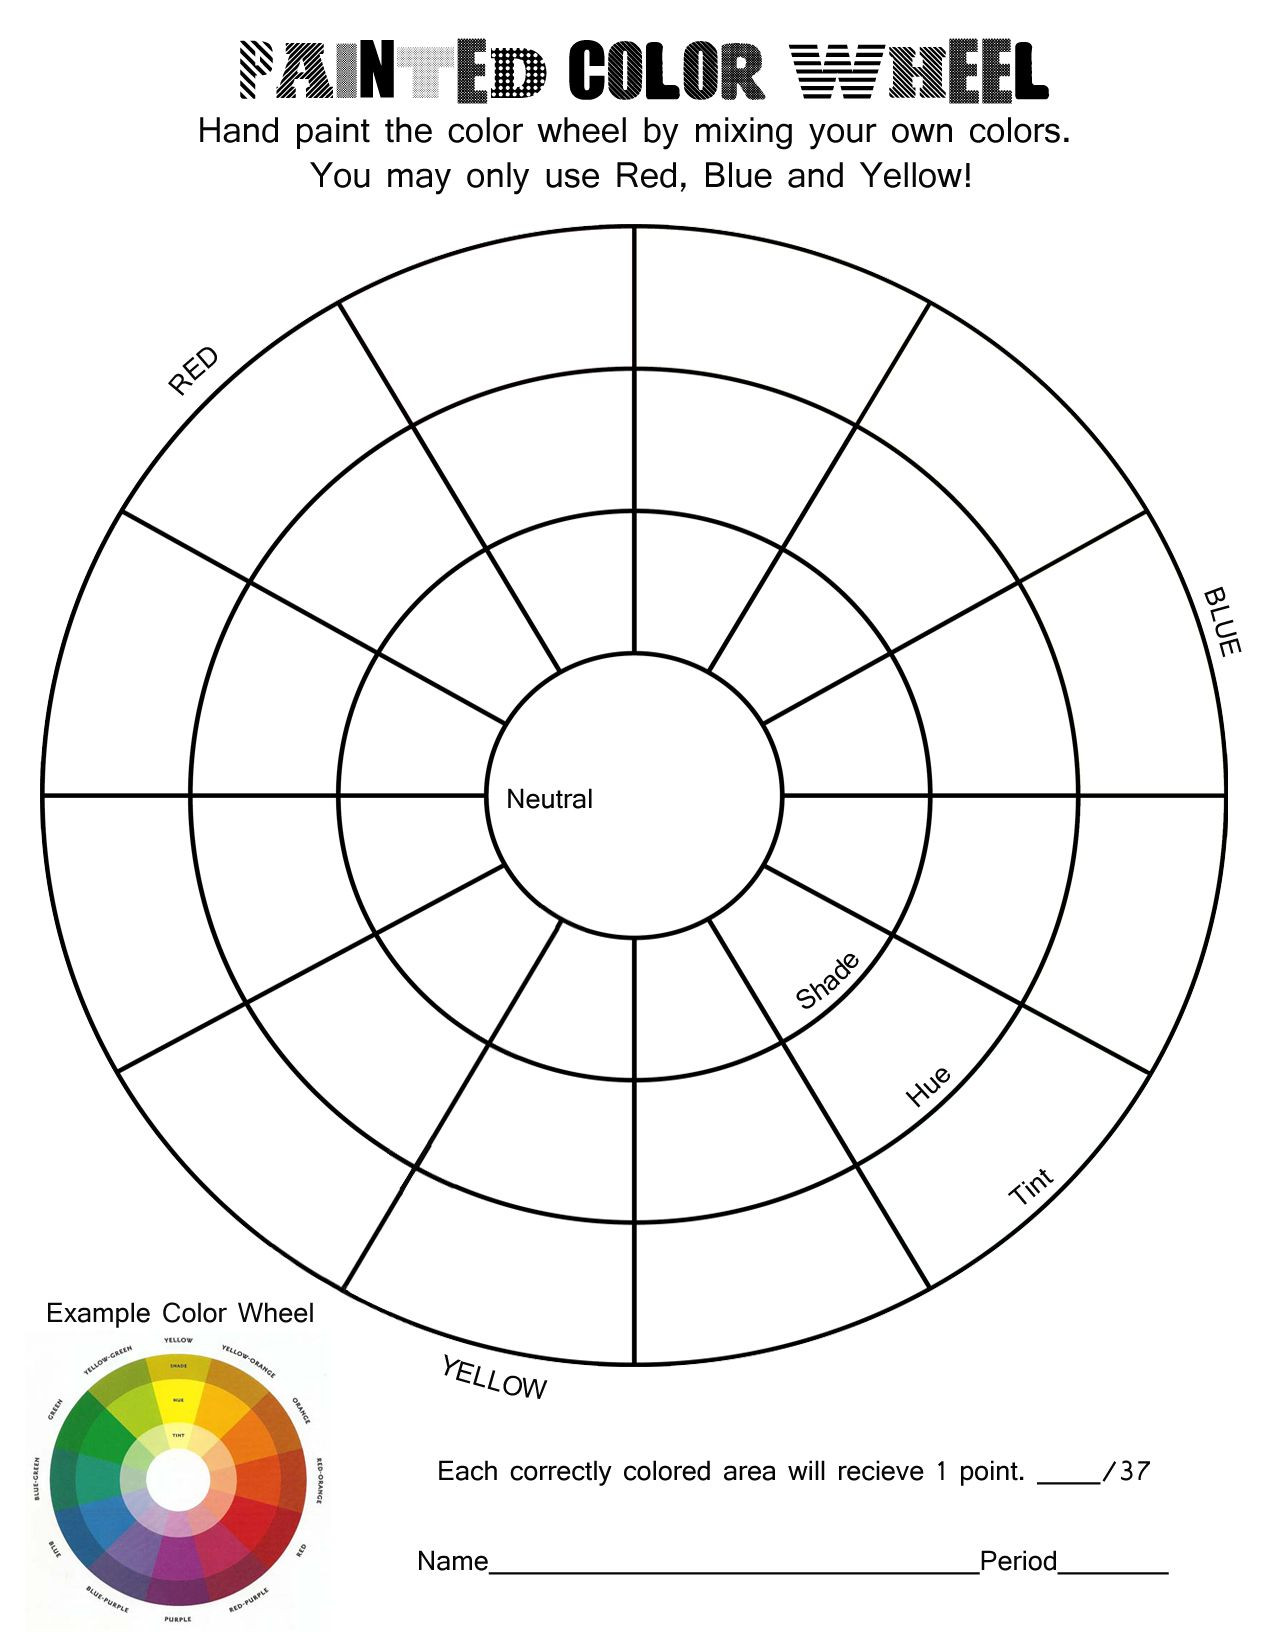 30 Color Theory Worksheet Answer Key